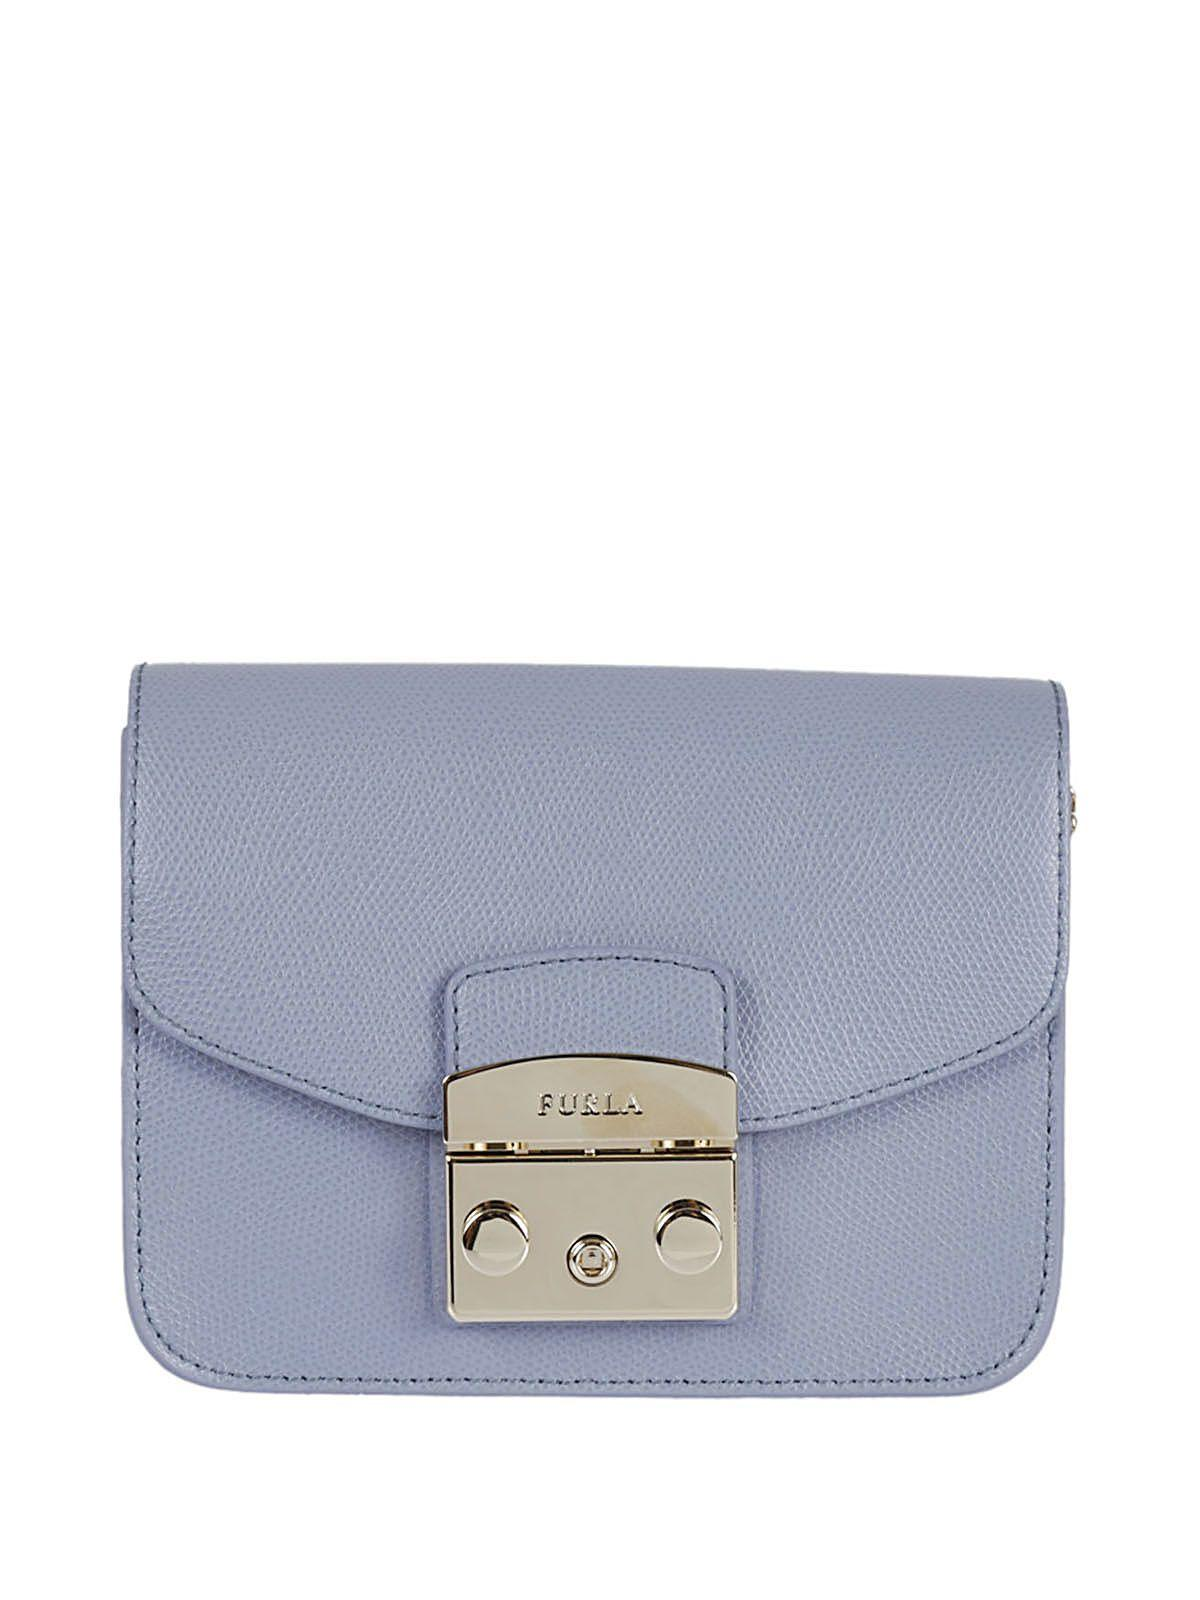 Furla Minibags Metropolis Lightblue In Azzurro